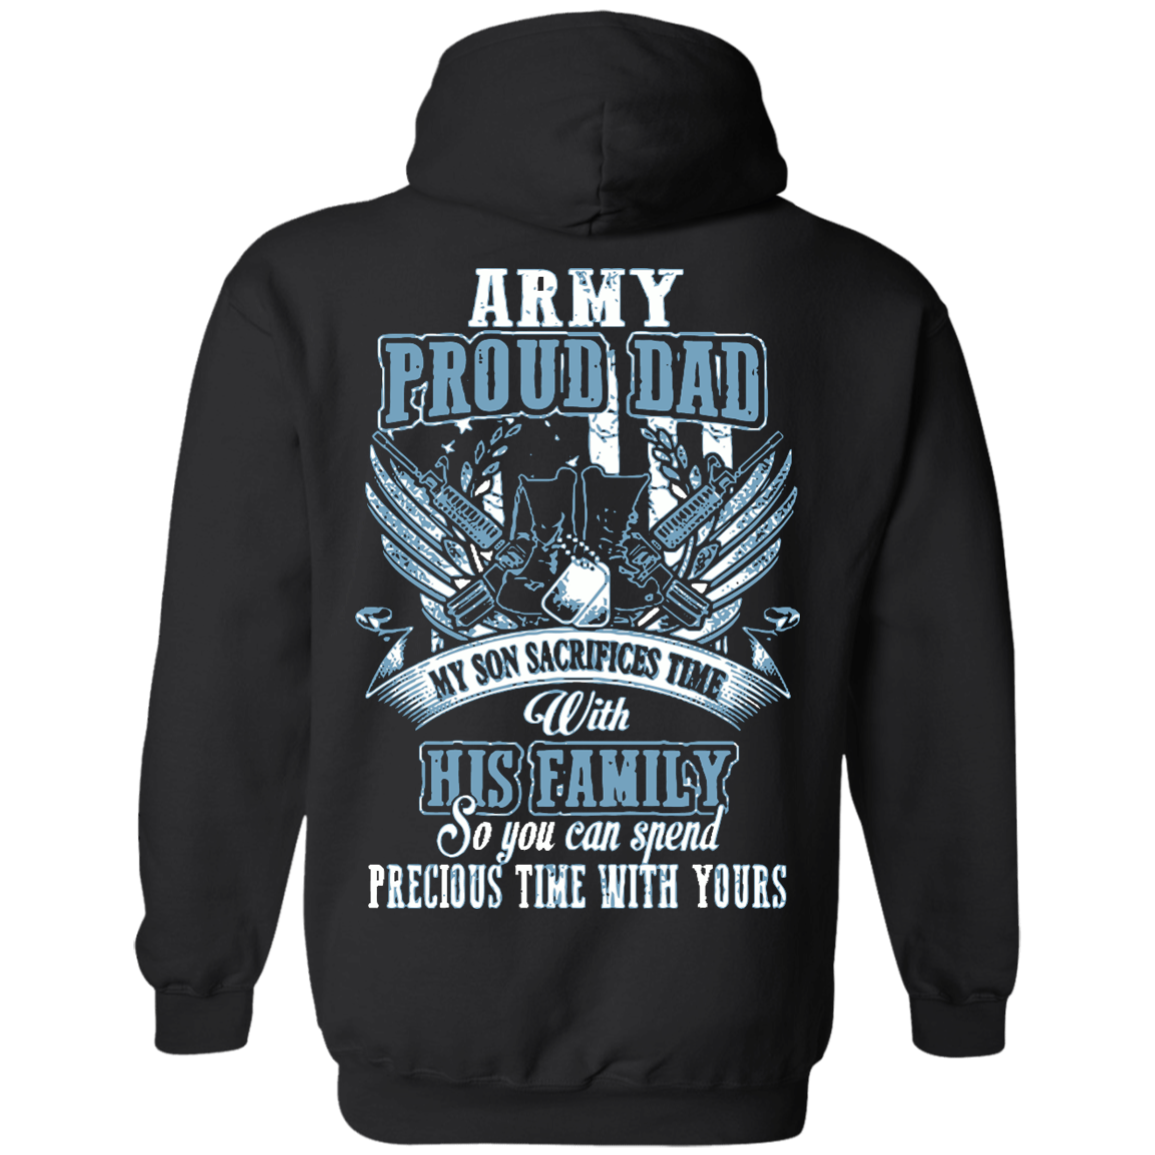 AM Dad - Son - Army Proud DAD My Son Sacrifices Time With His Family S - The Sun Cat